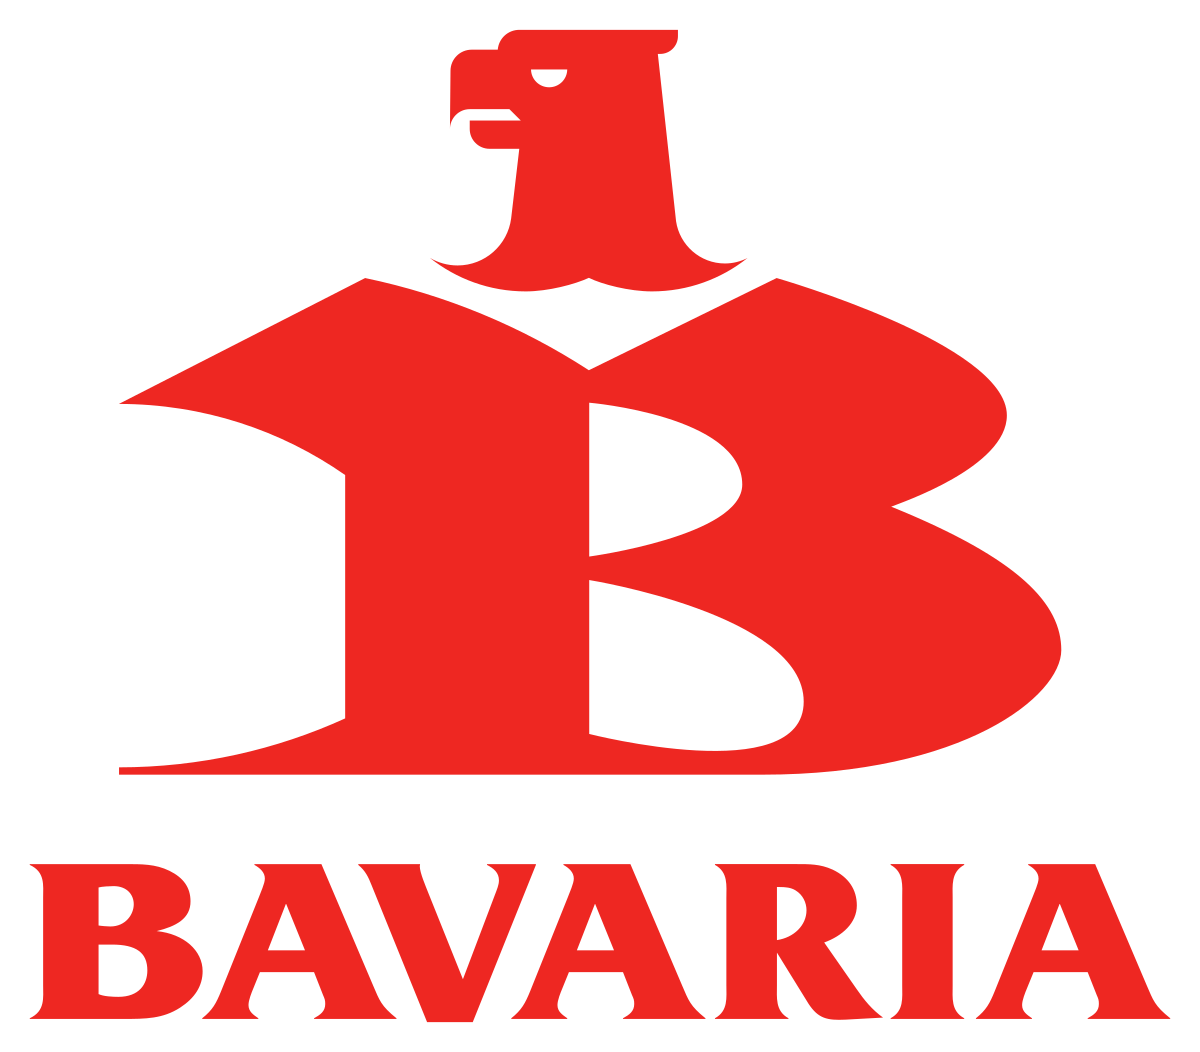 Bavaria_(Kolumbien)_logo.svg